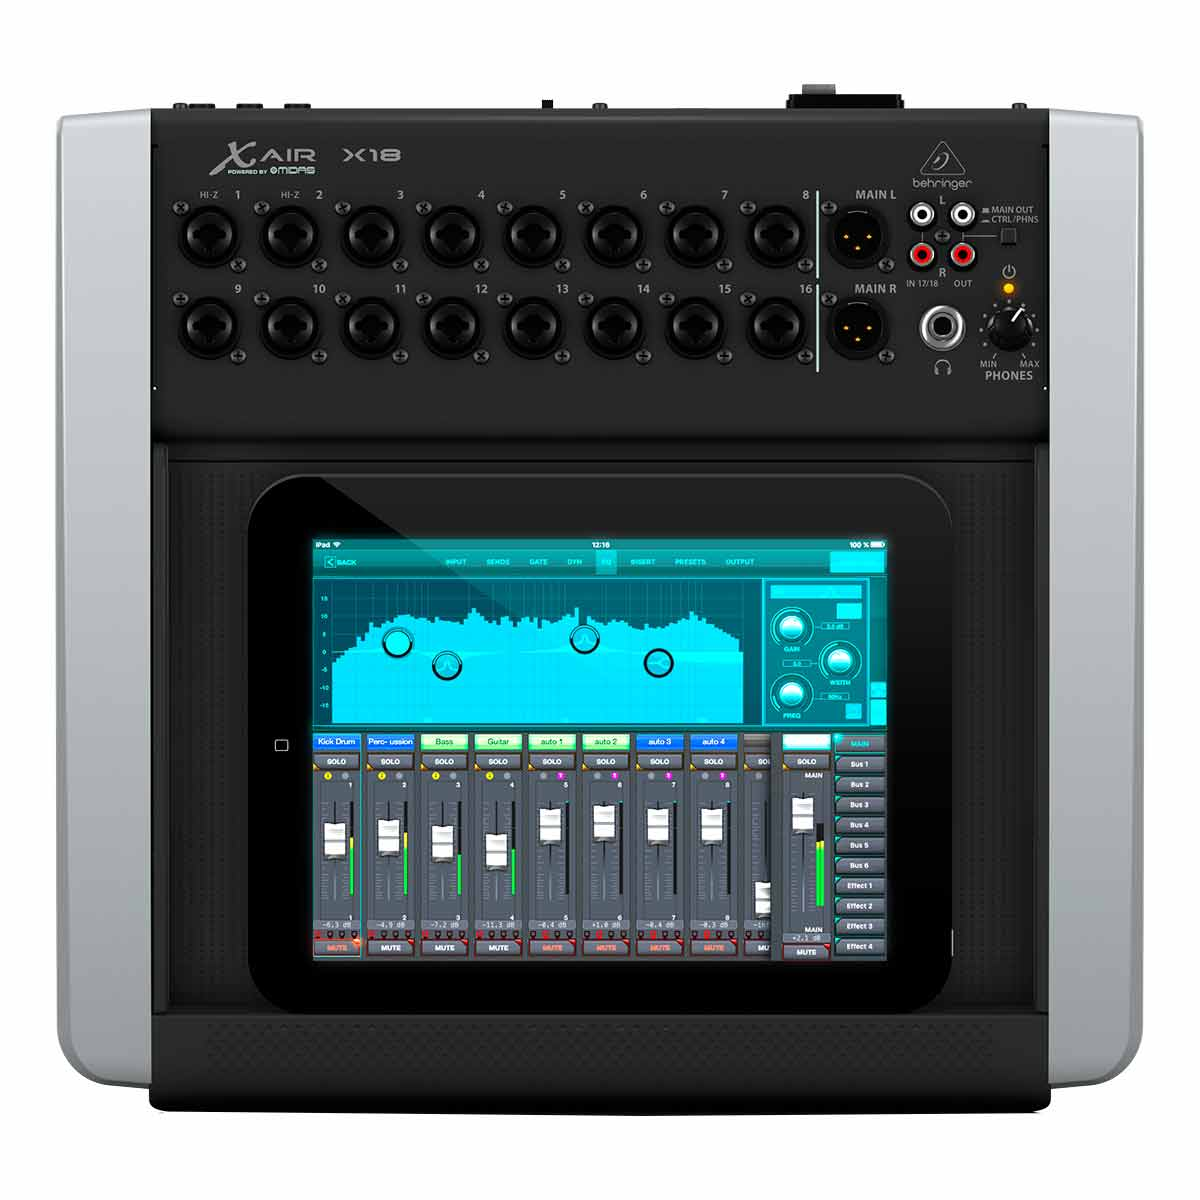 Mixer digital para iOS/PC/Android com 18-in/8-out X-Air X18 - Behringer